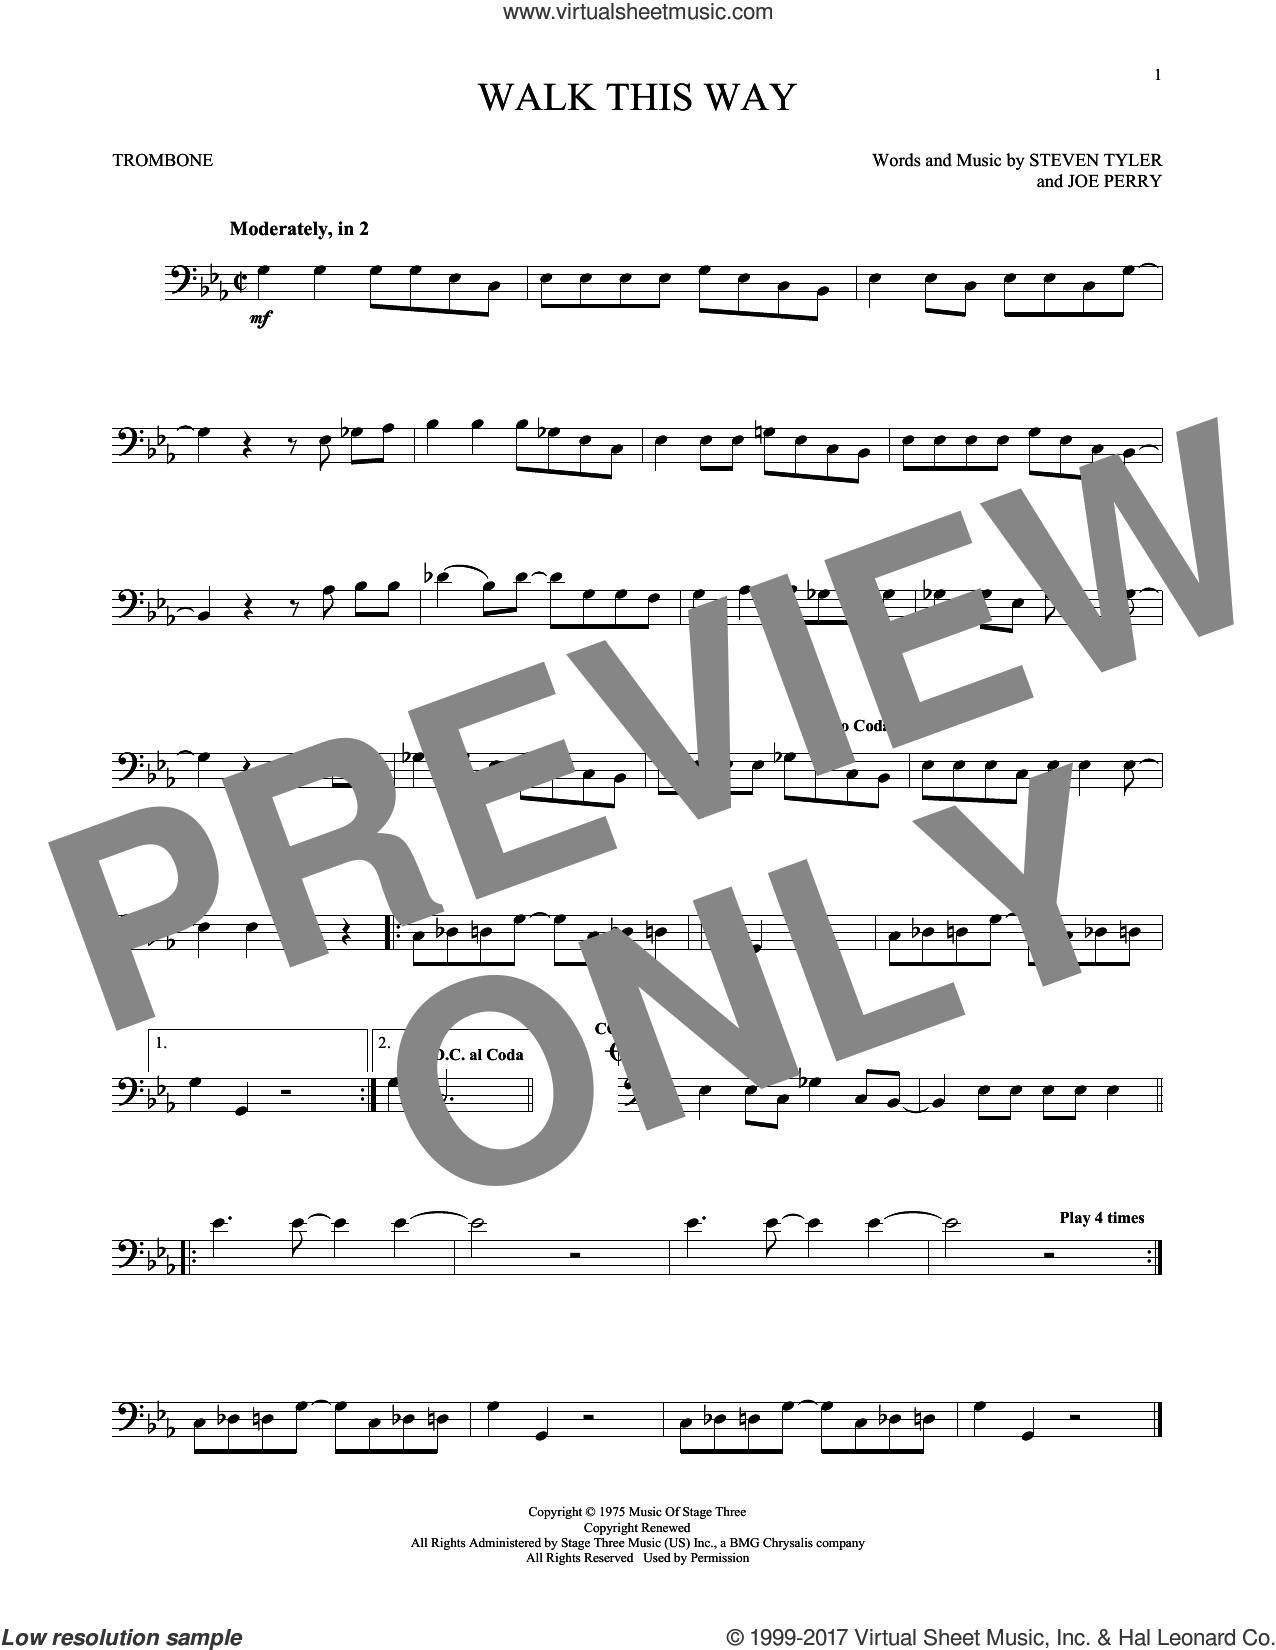 Walk This Way sheet music for trombone solo by Aerosmith, Run D.M.C., Joe Perry and Steven Tyler, intermediate skill level